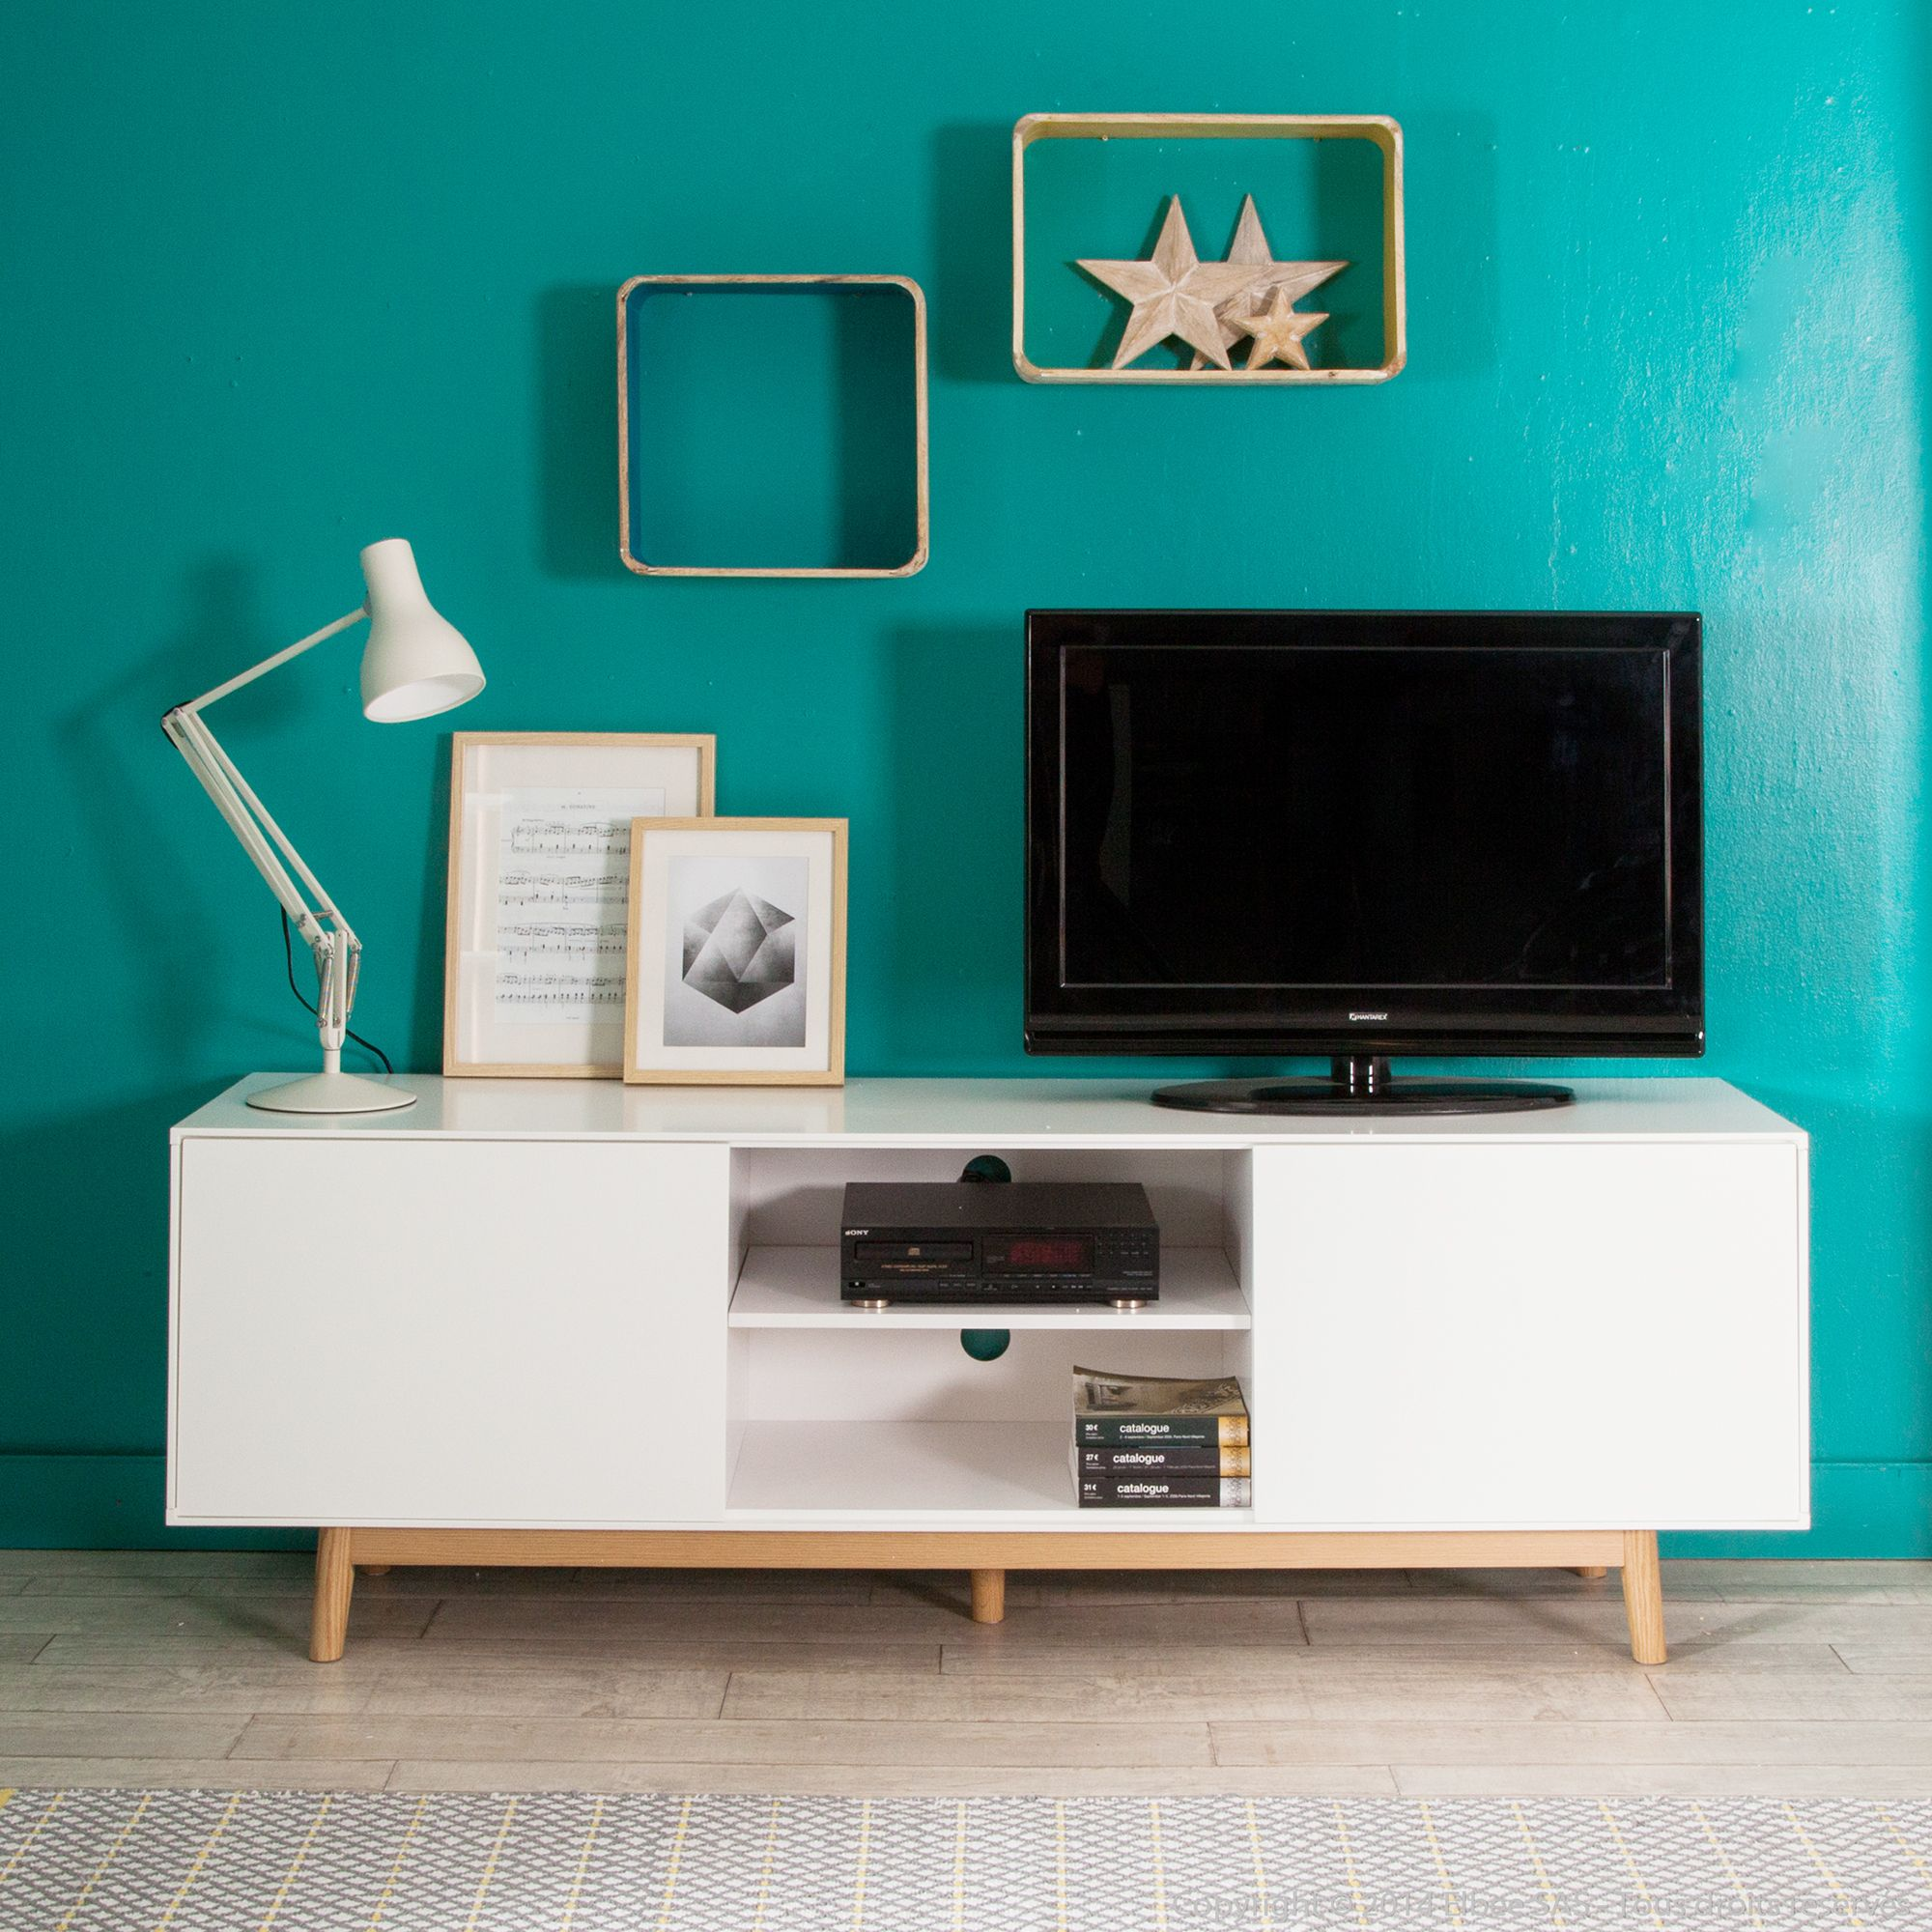 meuble tv 2 portes 2 niches en bois laqu blanc pieds ch ne l180cm jacobson tvs et ps. Black Bedroom Furniture Sets. Home Design Ideas